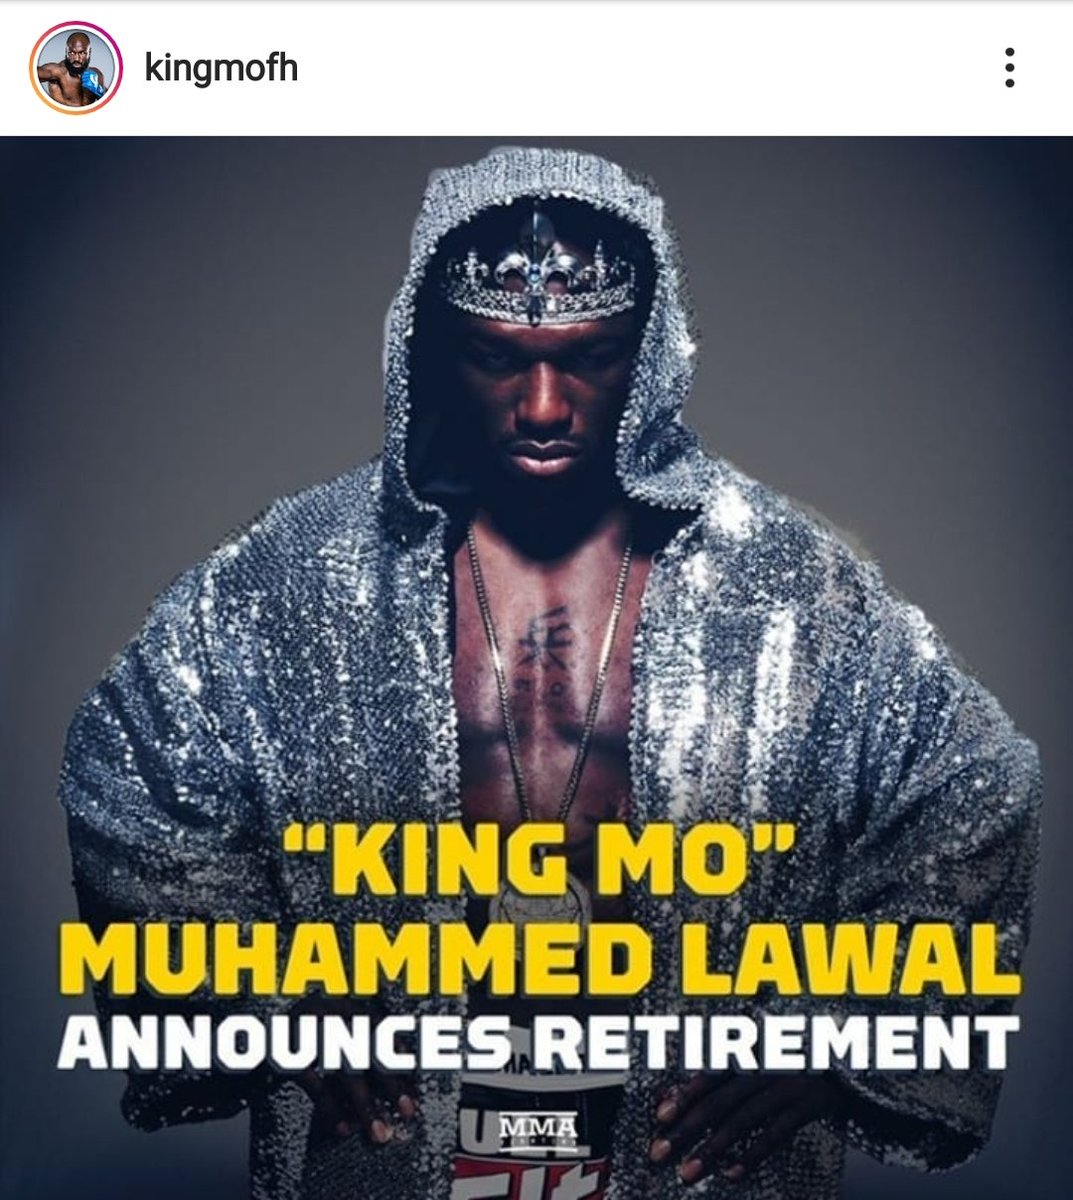 Congrats 2 an OG @KingMoFH. From the mat 2 the cage he did it his way n left a great legacy as an athlete. The first of the new gen of @USAWrestling guys 2 crossover. Always willing 2 help whether I was a young pup in wrestling or lookin to transition to MMA. Will be a fan 4 life